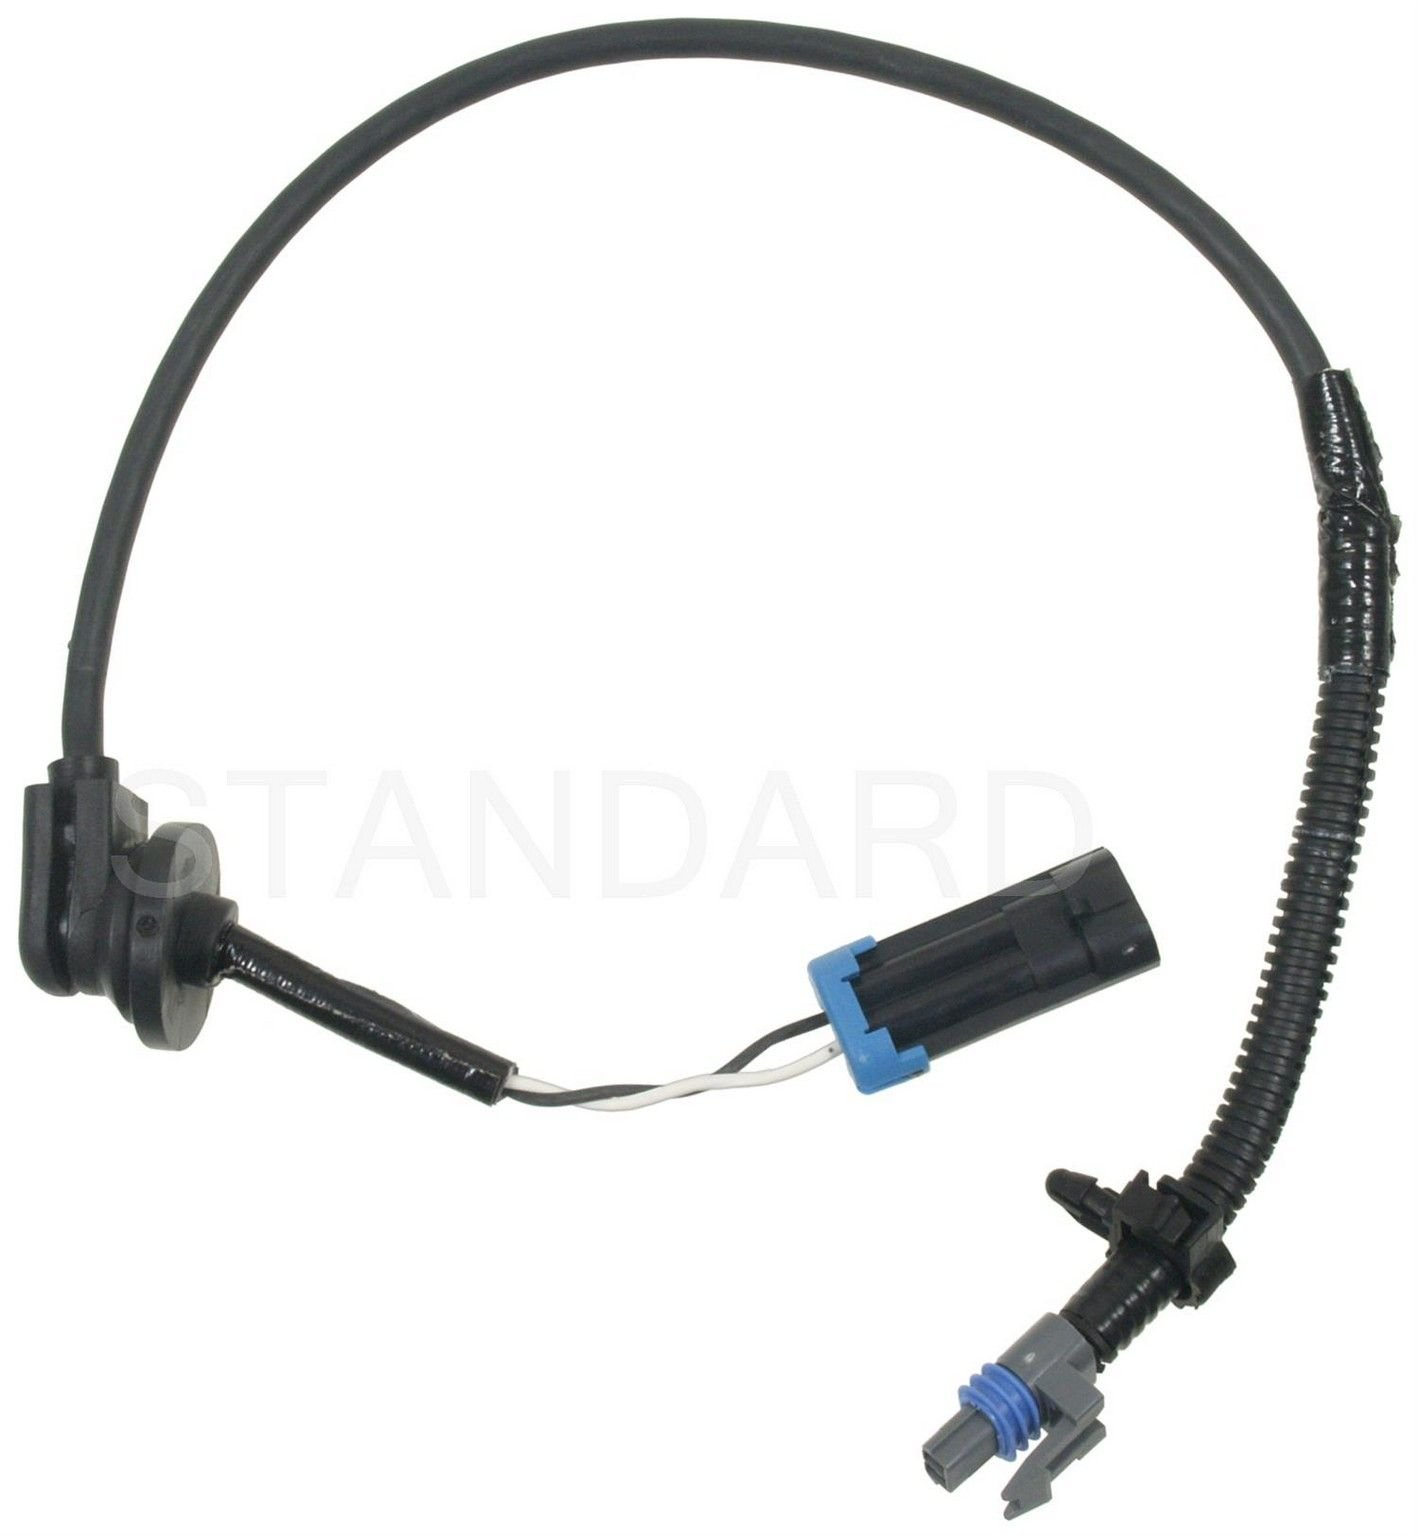 1992 Pontiac Grand Prix ABS Wheel Speed Sensor Wiring Harness - Front Right  (Standard Ignition ALS1362)